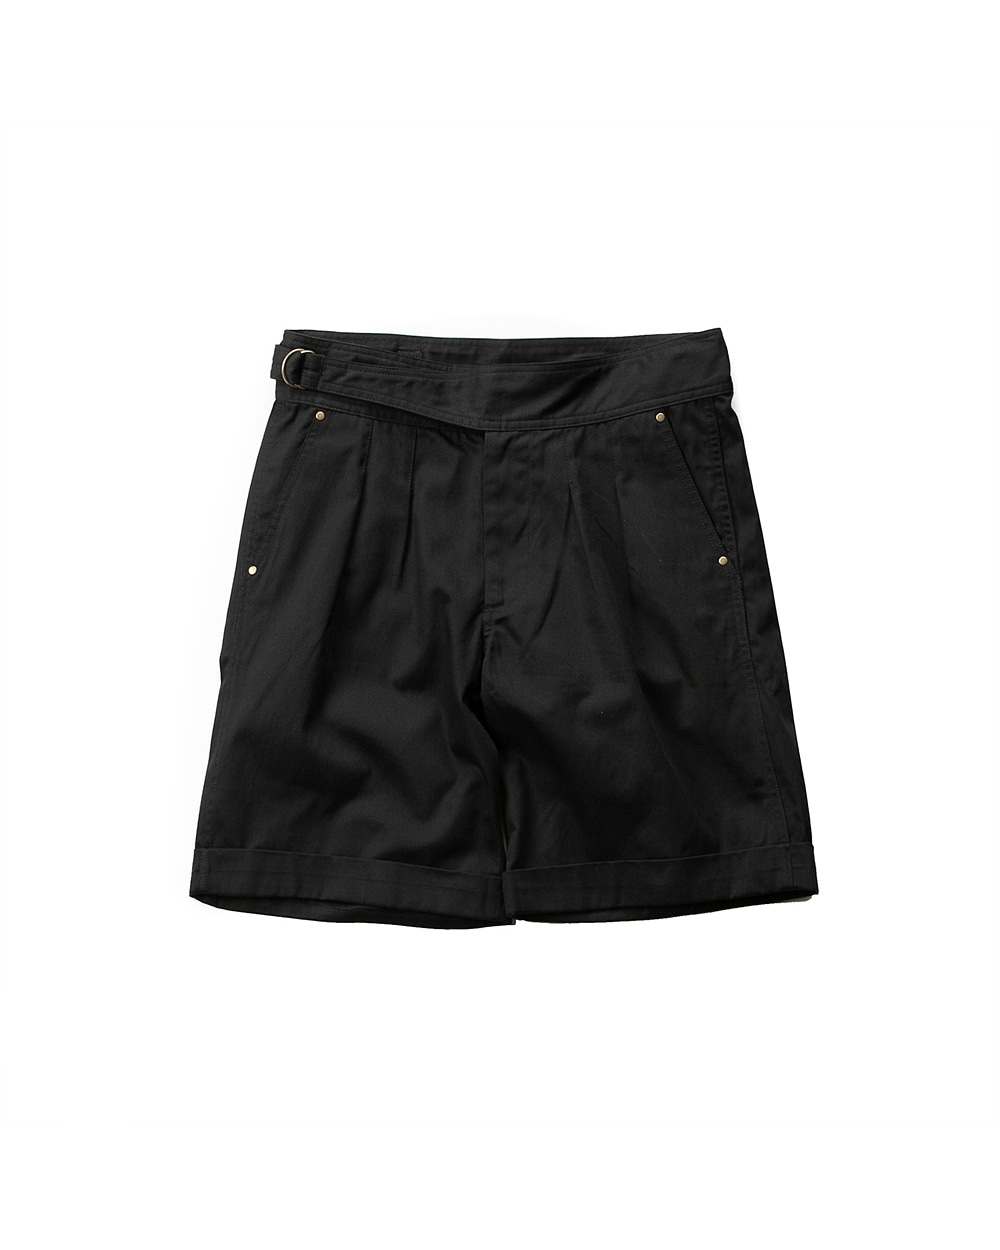 SIDEFIX HALF PANTS BLACK